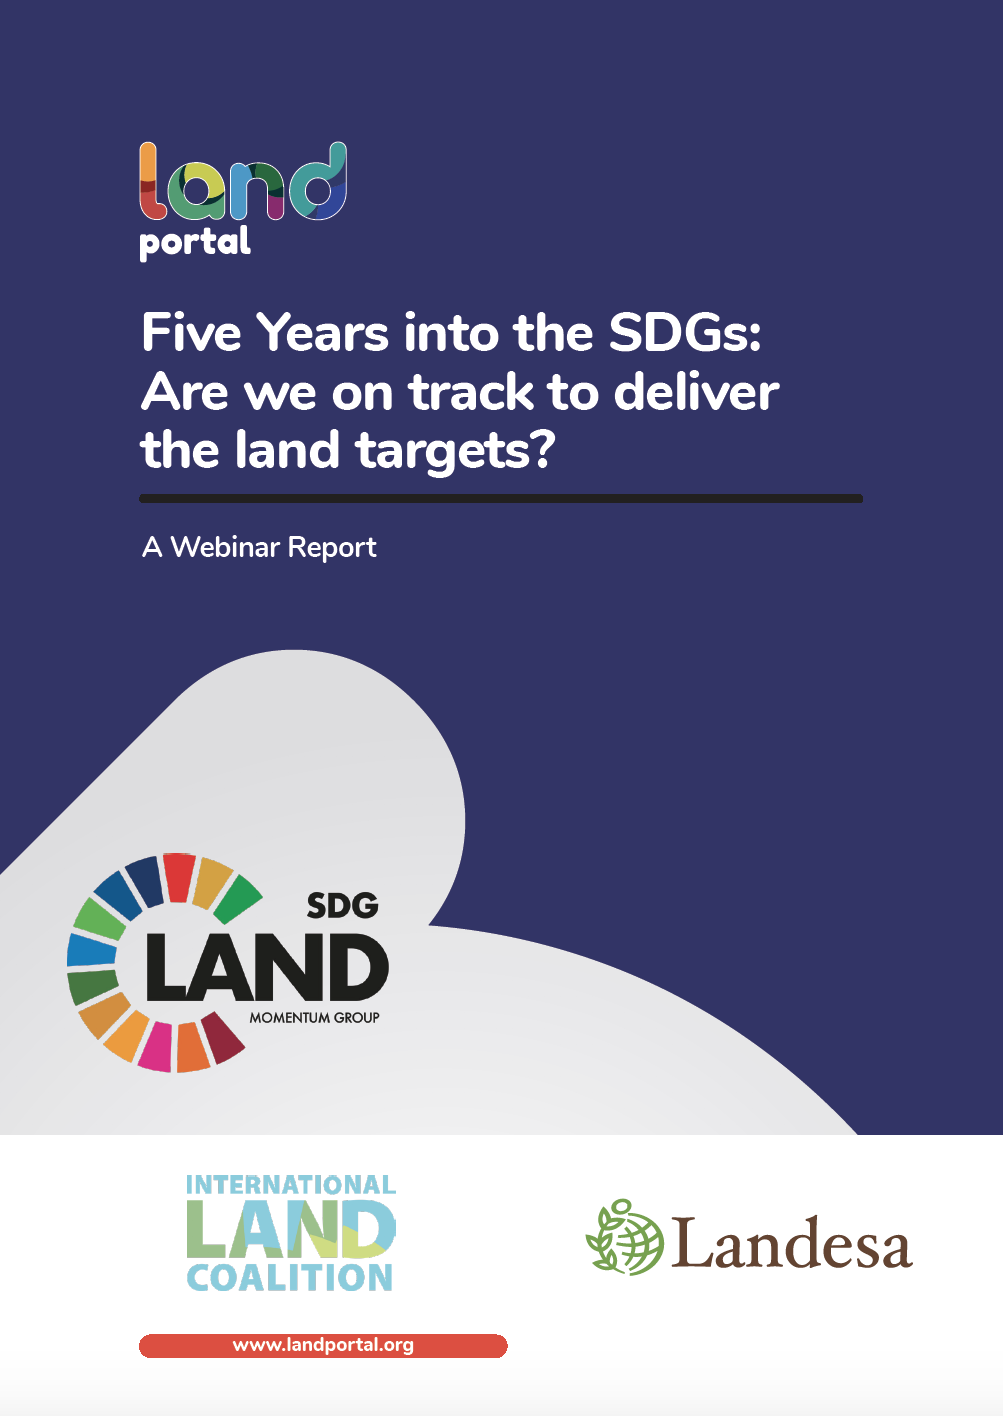 Five Years into the SDGs: Are we on track to deliver the land targets?